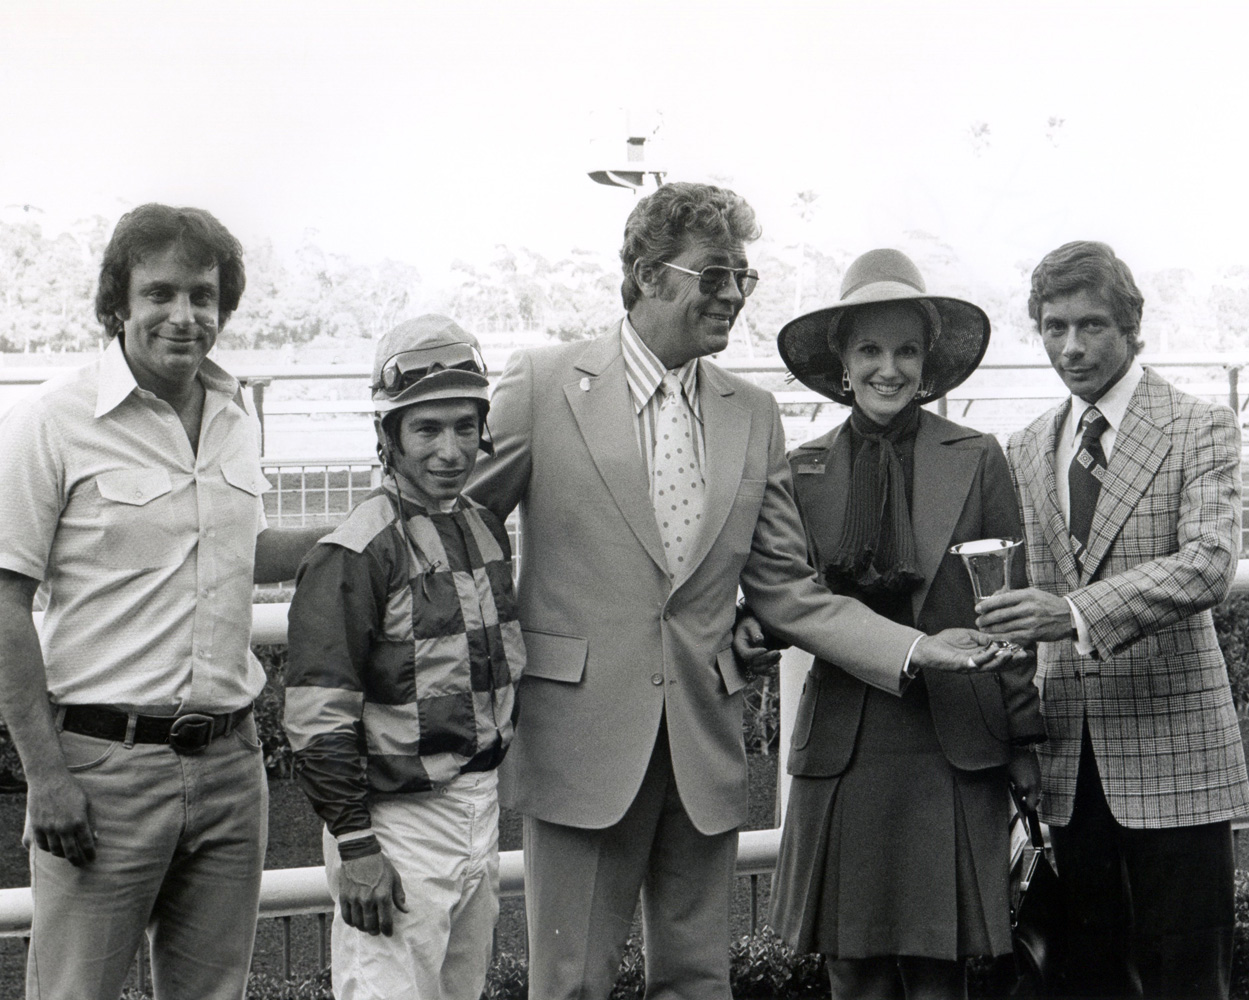 Bobby Frankel, jockey Laffit Pincay, Jr, actor Cliff Robertson, Linda Pincay, and an unidentified man. at a trophy presentation at Hollywood Park, May 1973 (Bill Mochon/Museum Collection)